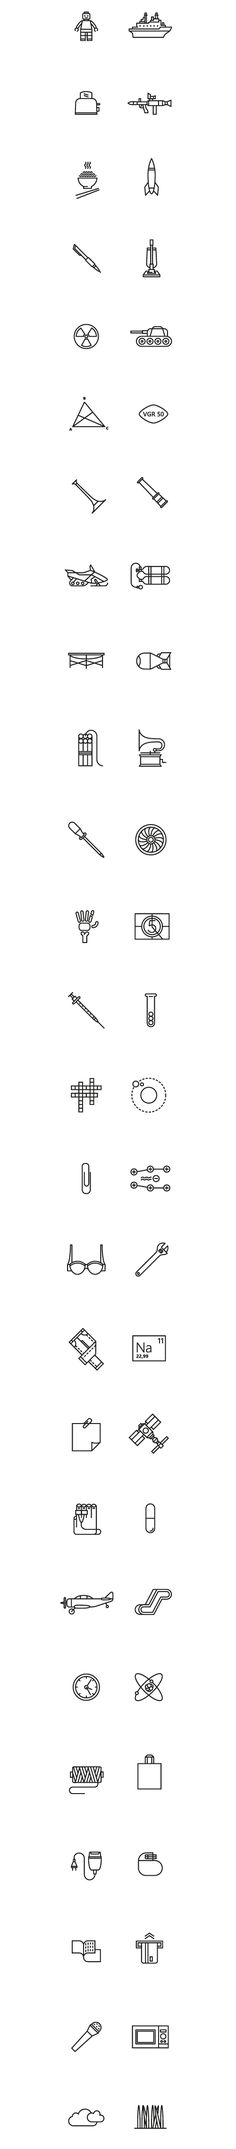 52 pictographic illustrations of inventions and discoveries. Esquire Russia by ooli mos